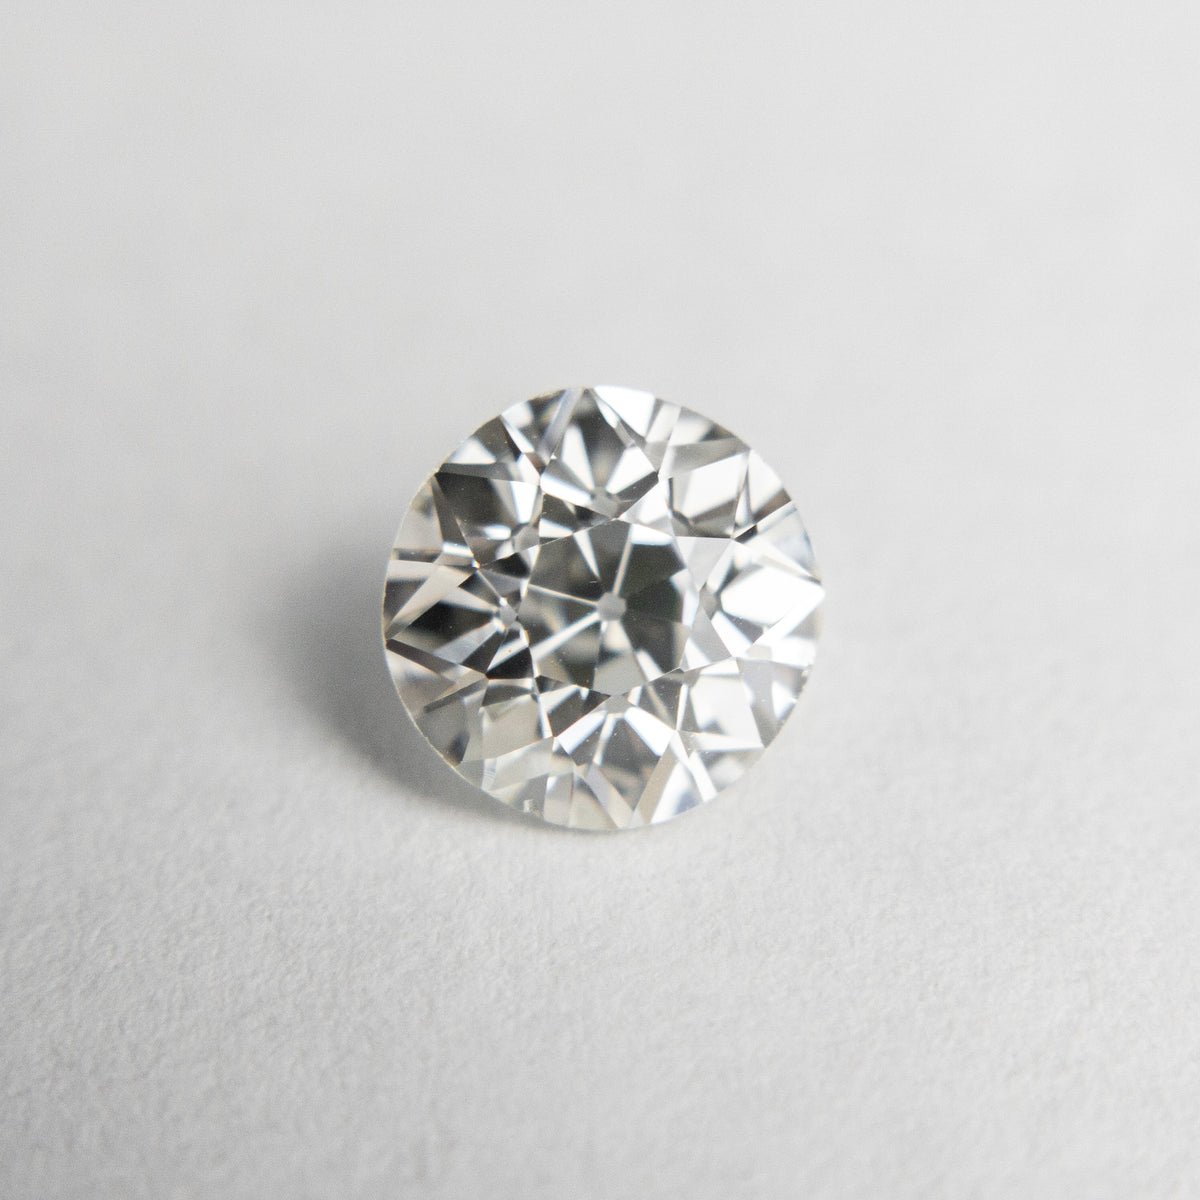 1.20ct 6.77x6.61x4.49mm GIA VS2 J Antique Old European Cut 18648-01